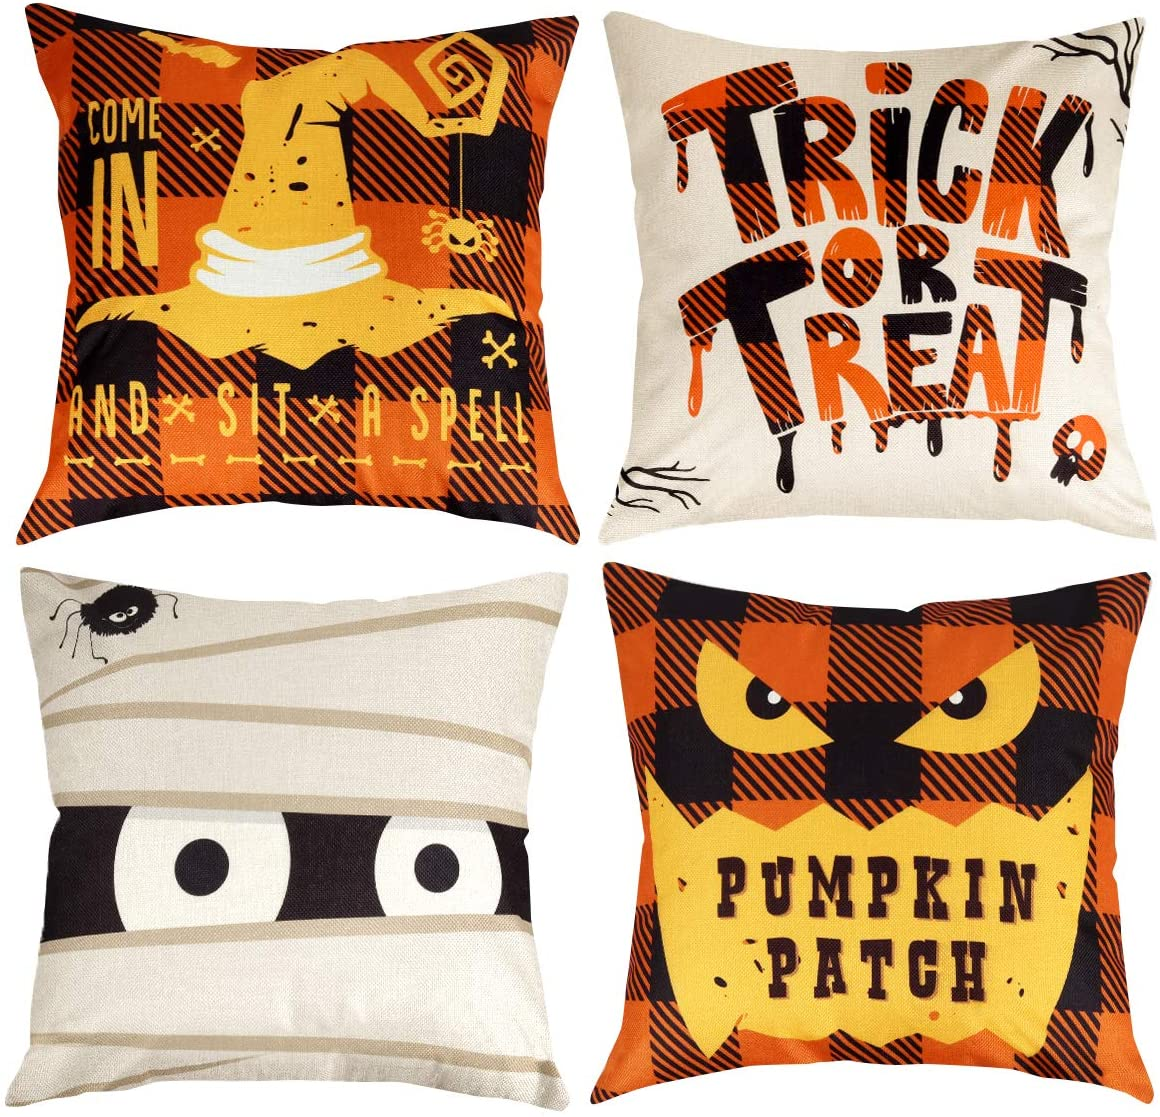 D-FantiX Halloween Pillow Covers 18x18 Inch Happy Halloween Decorations Throw Pillow Cover Set of 4 Square Linen Sofa Bed Cushion Pillow Case Decor